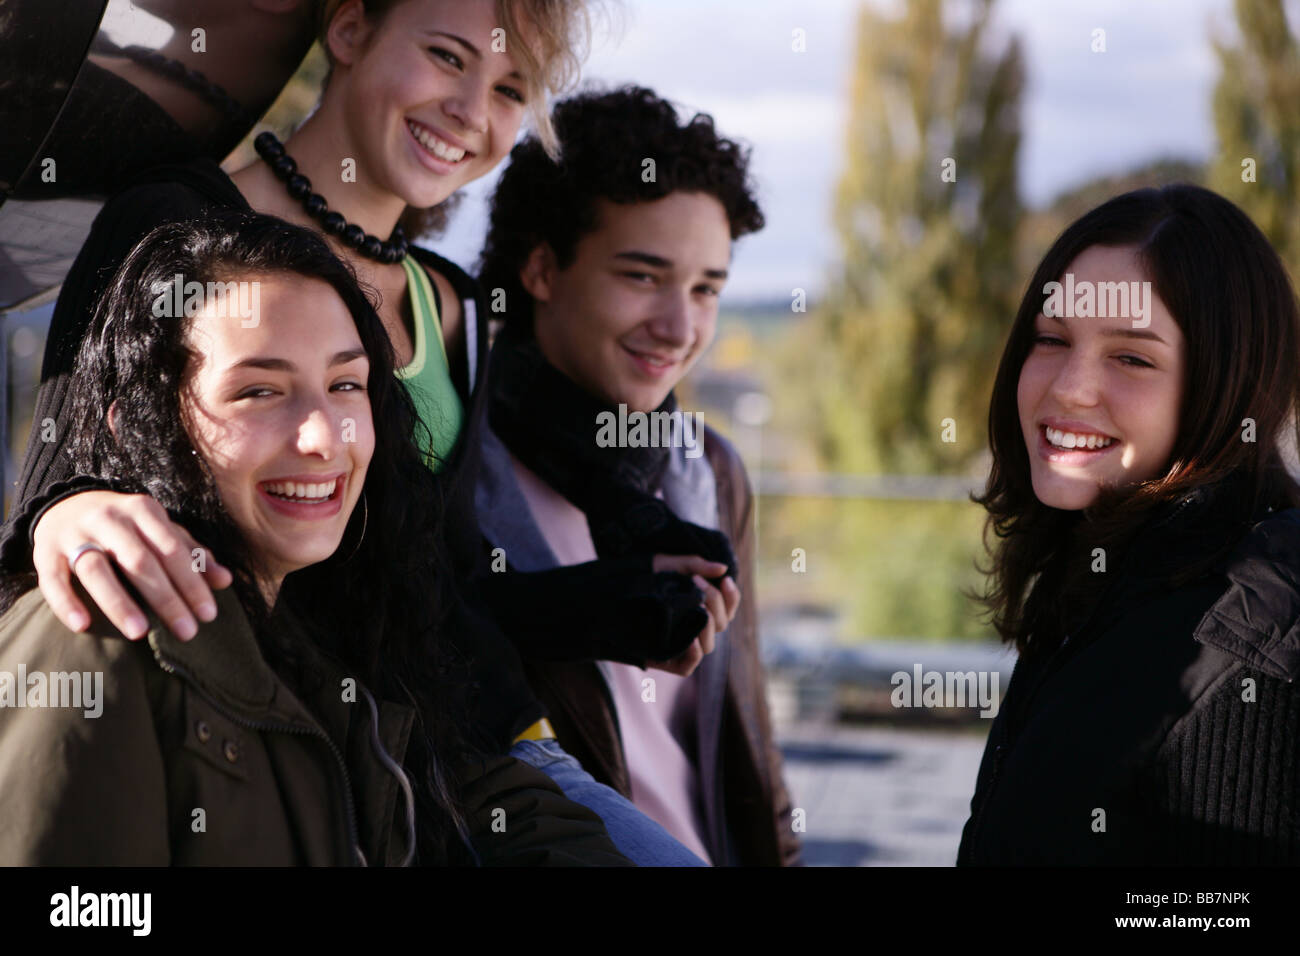 Portrait of teenager group smiling outside - Stock Image